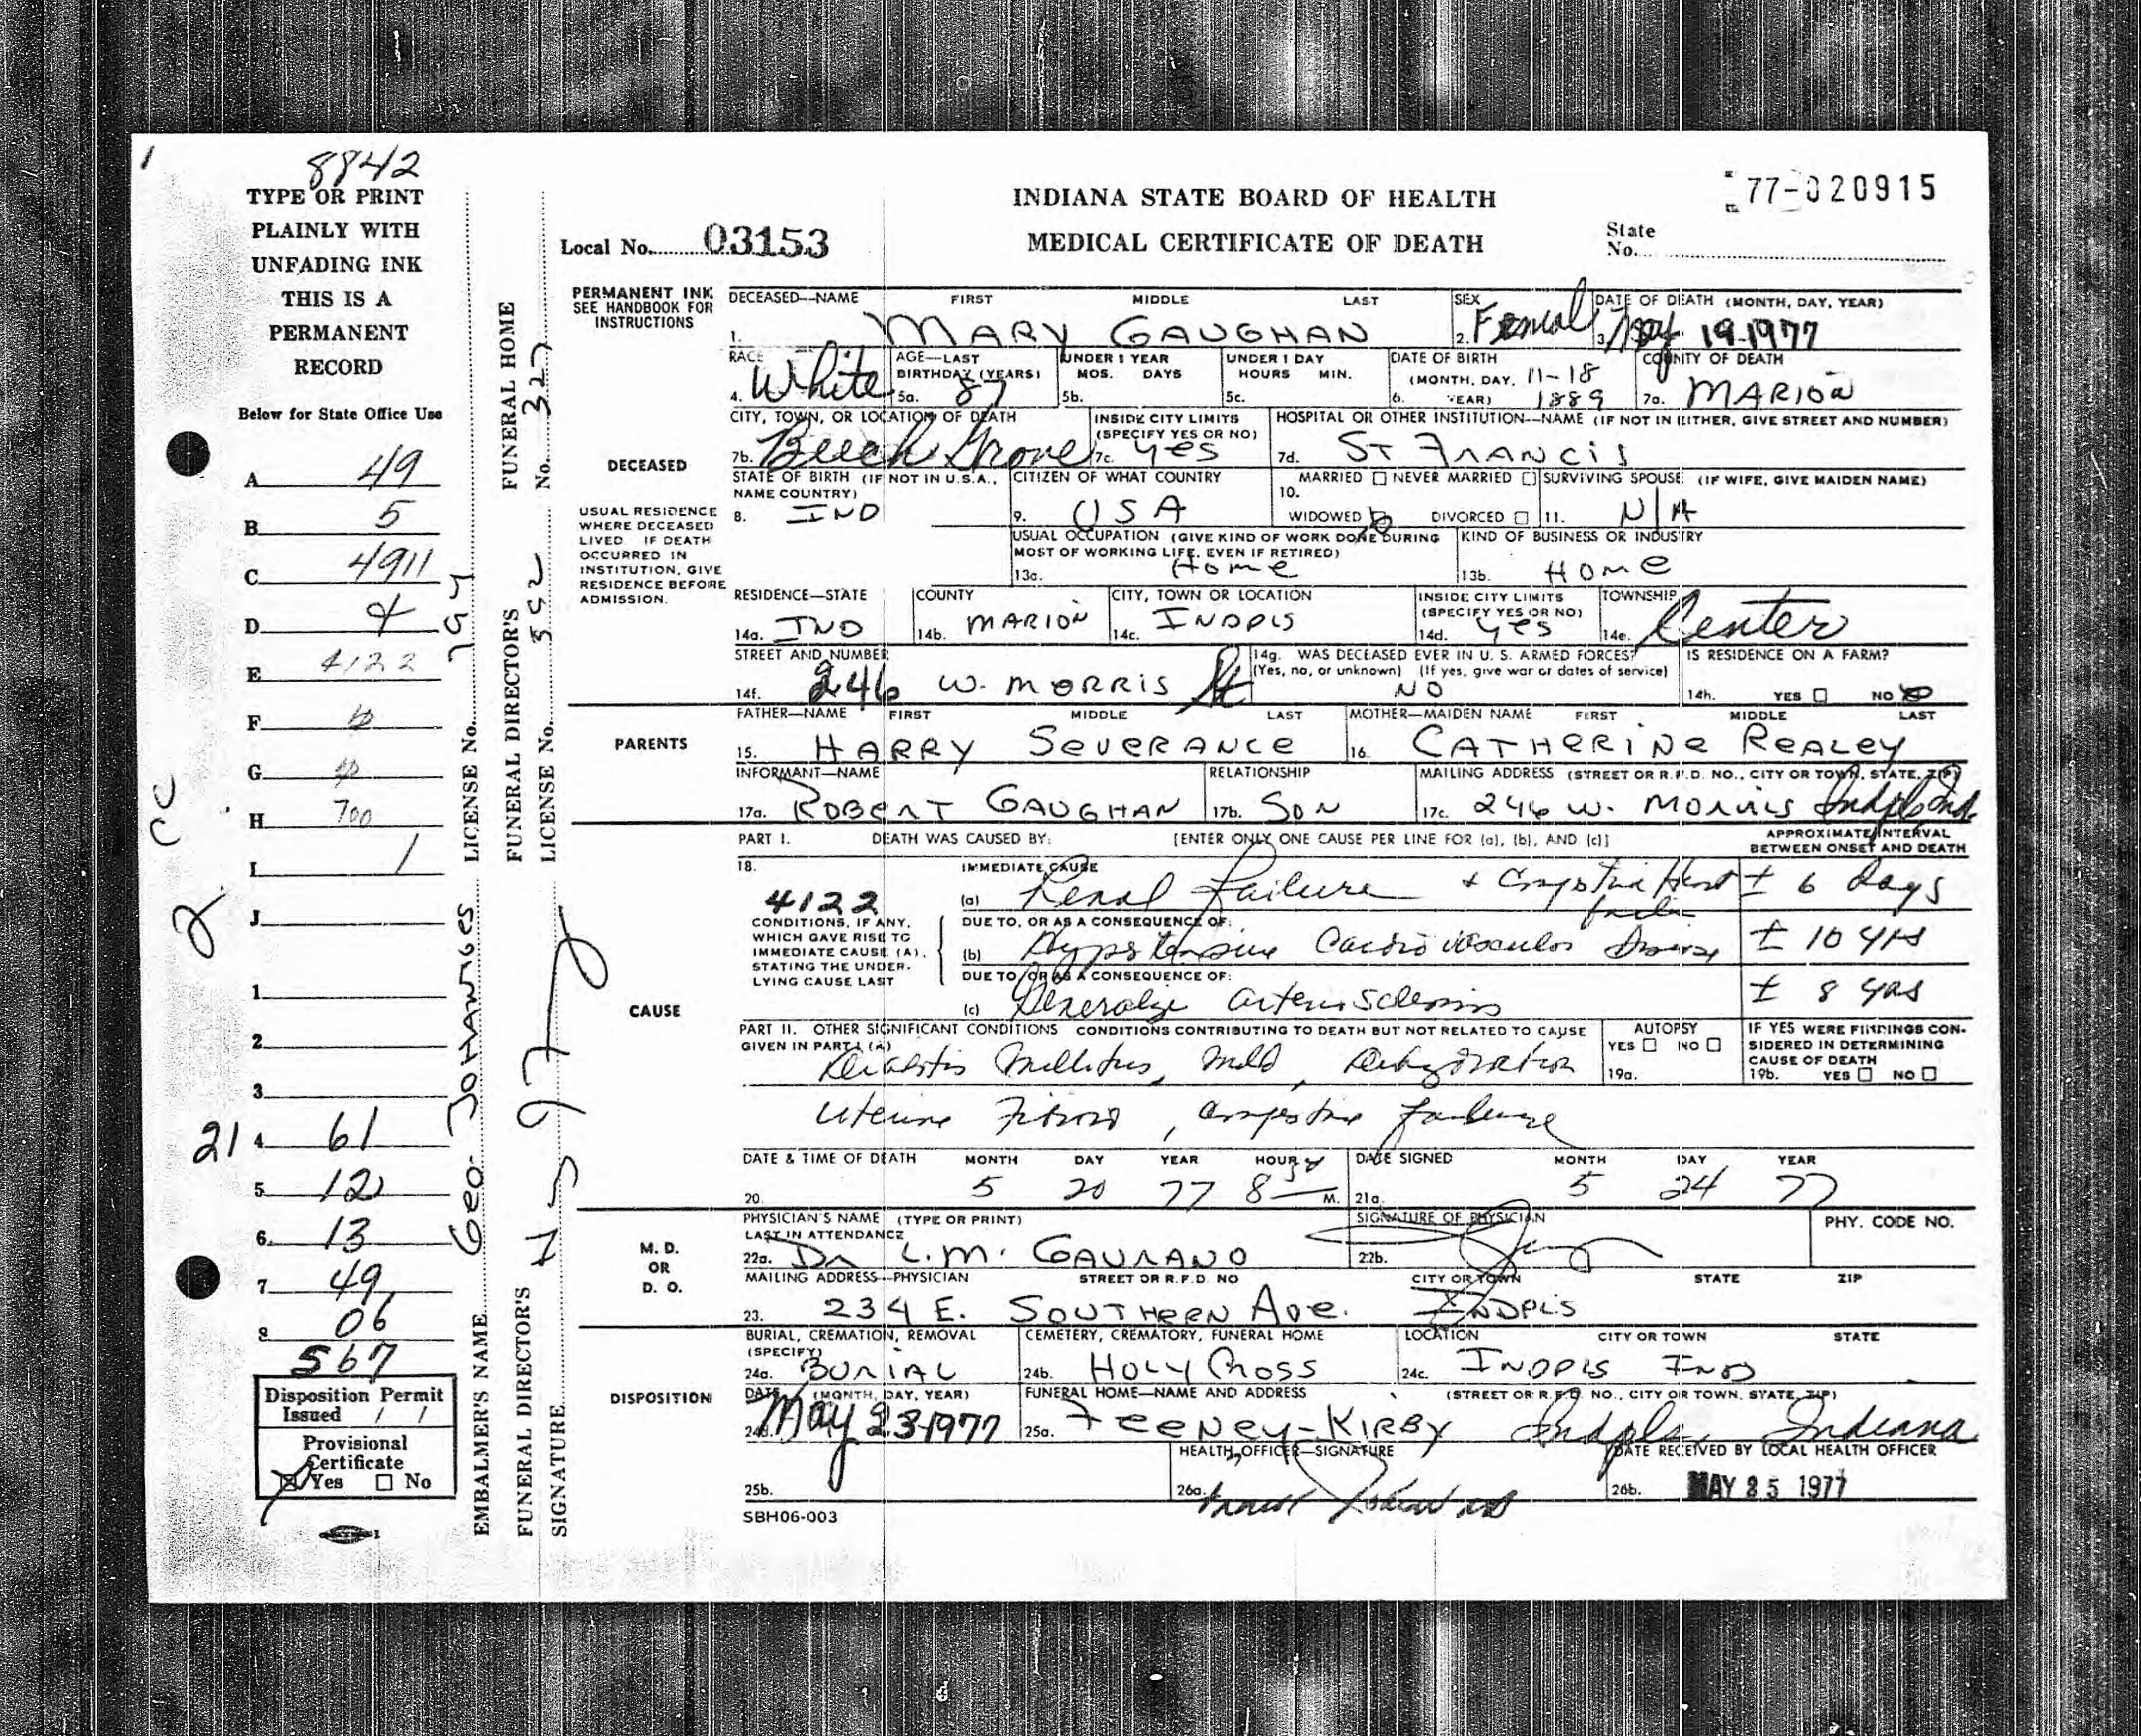 Indiana archives and records administration indianapolis in usa indiana archives and records administration indianapolis in usa death certificates year aiddatafo Choice Image